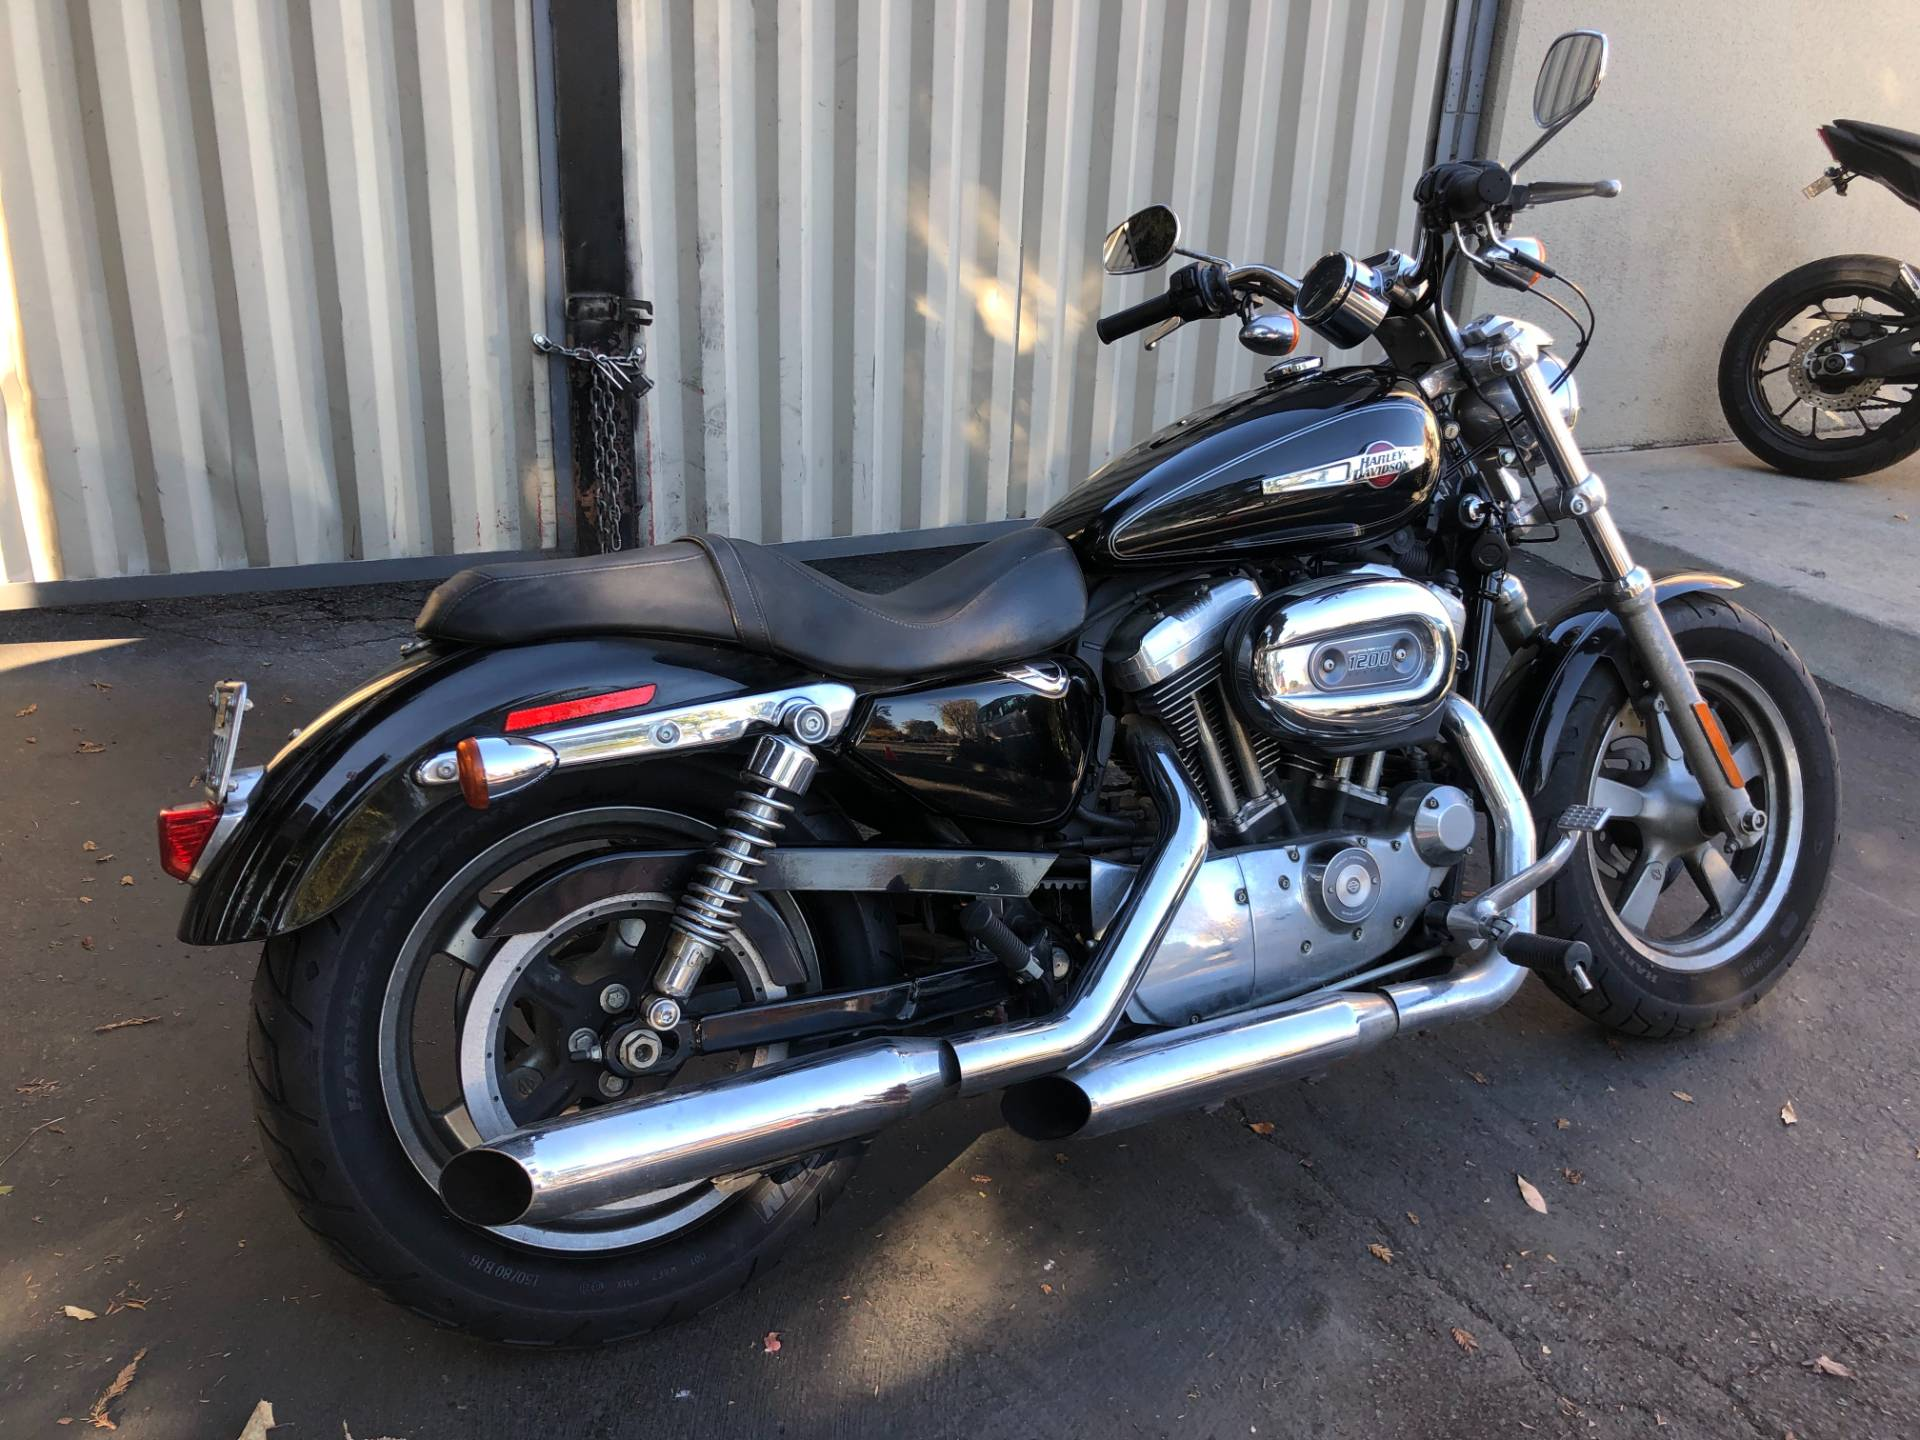 Used 2013 Harley Davidson Sportster 1200 Custom Vivid Black Motorcycles In San Jose Ca 400633